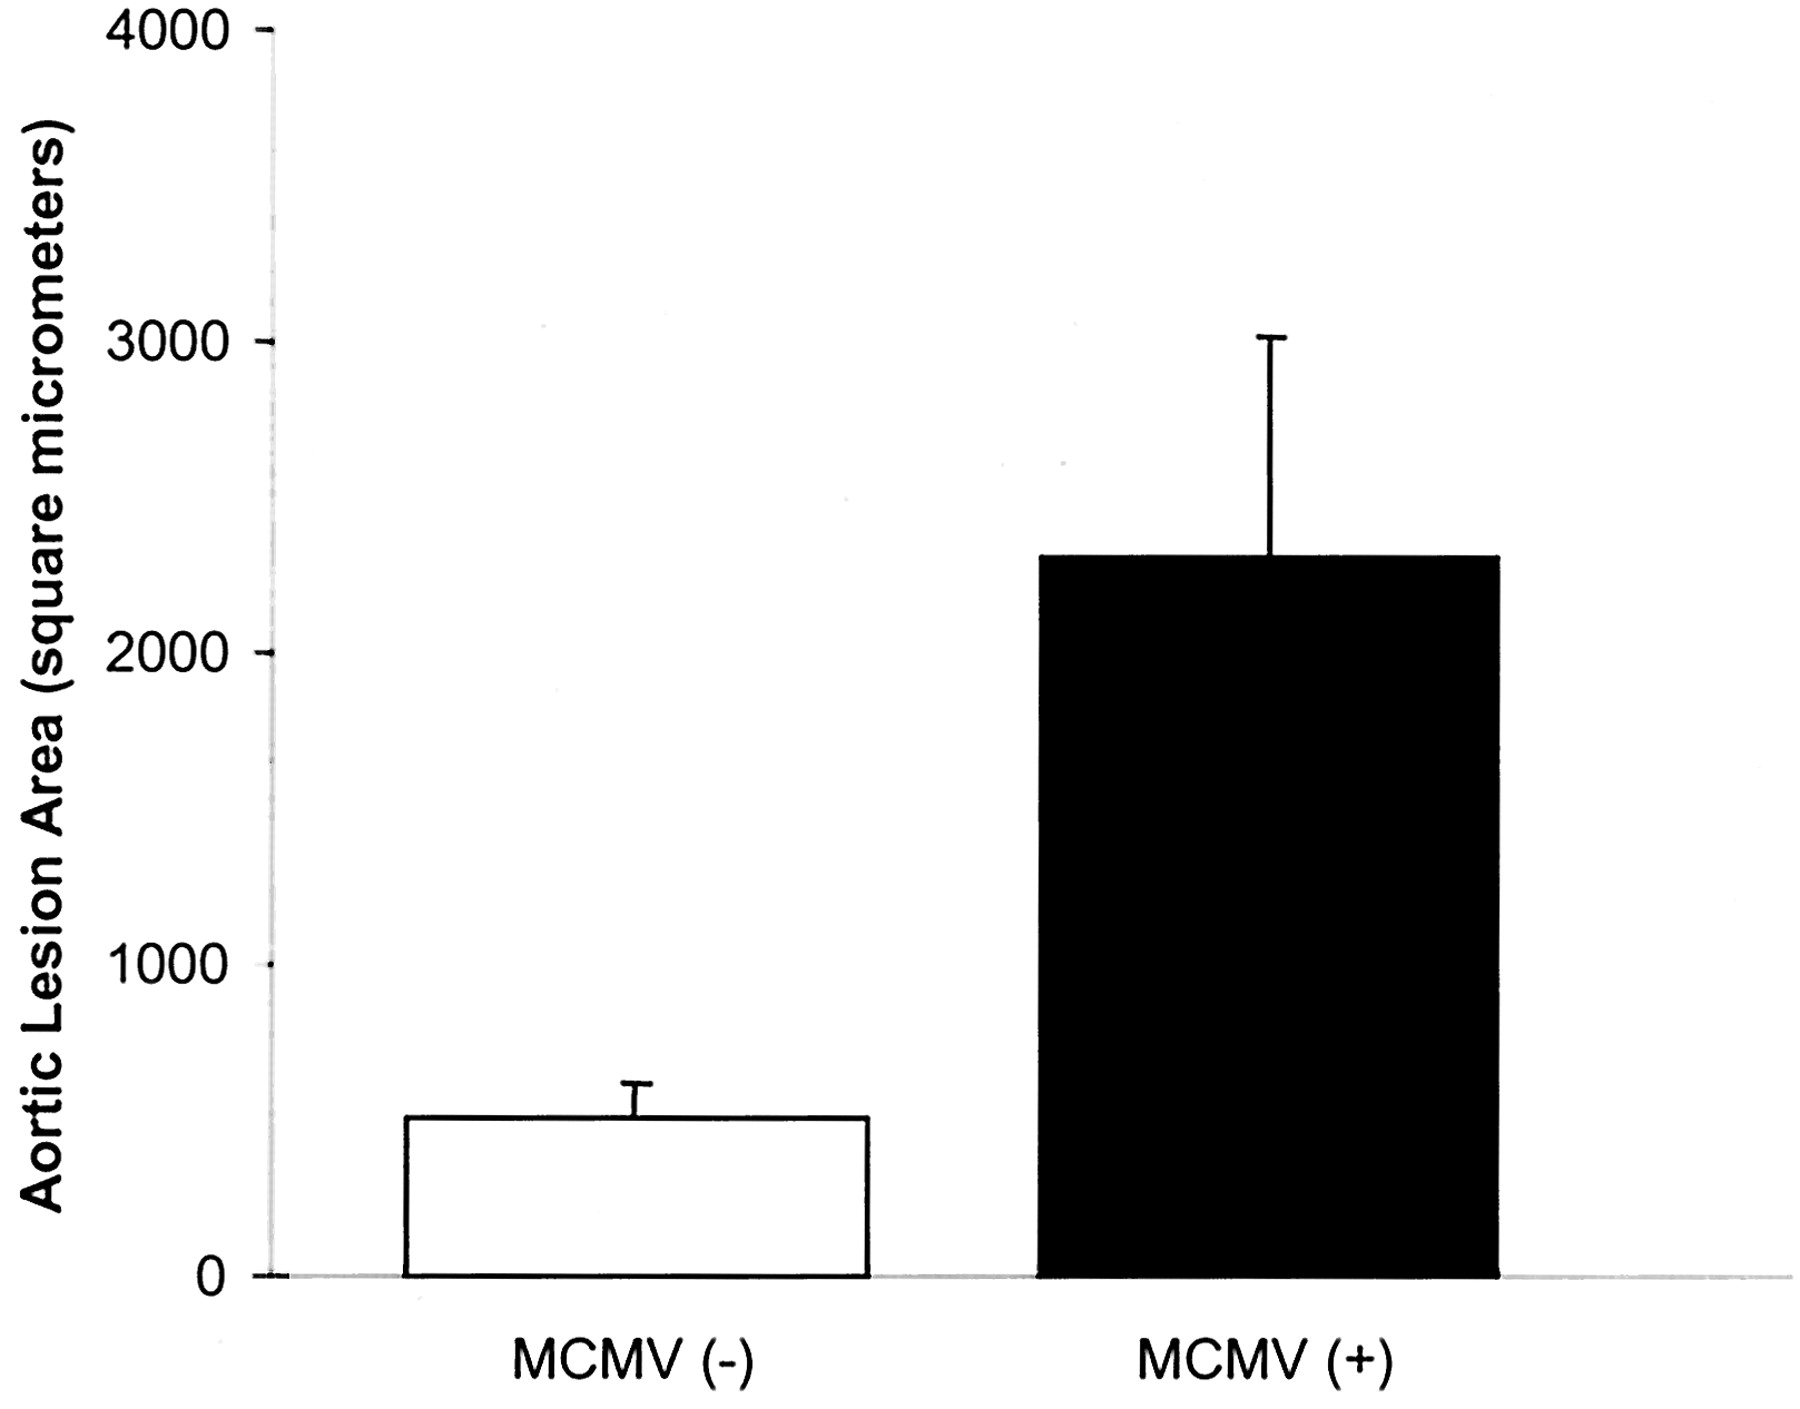 Murine Cytomegalovirus Infection Increases Aortic Expression of